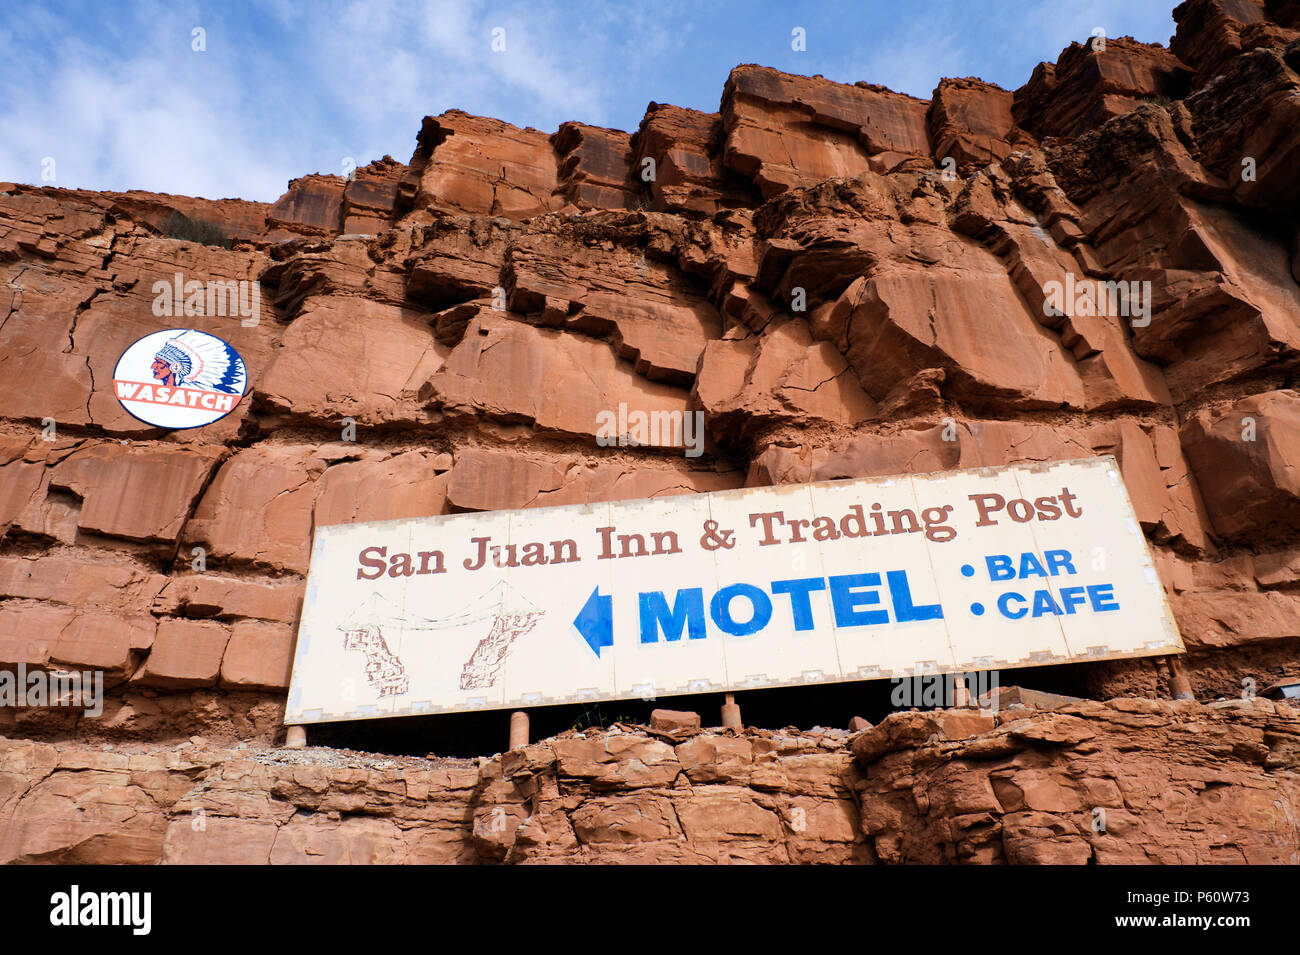 On a red rock cliff near Mexican Hat, Utah, advertising signs for Wasatch Oil and Gaz,  and San Juan Inn and Trading Post. - Stock Image